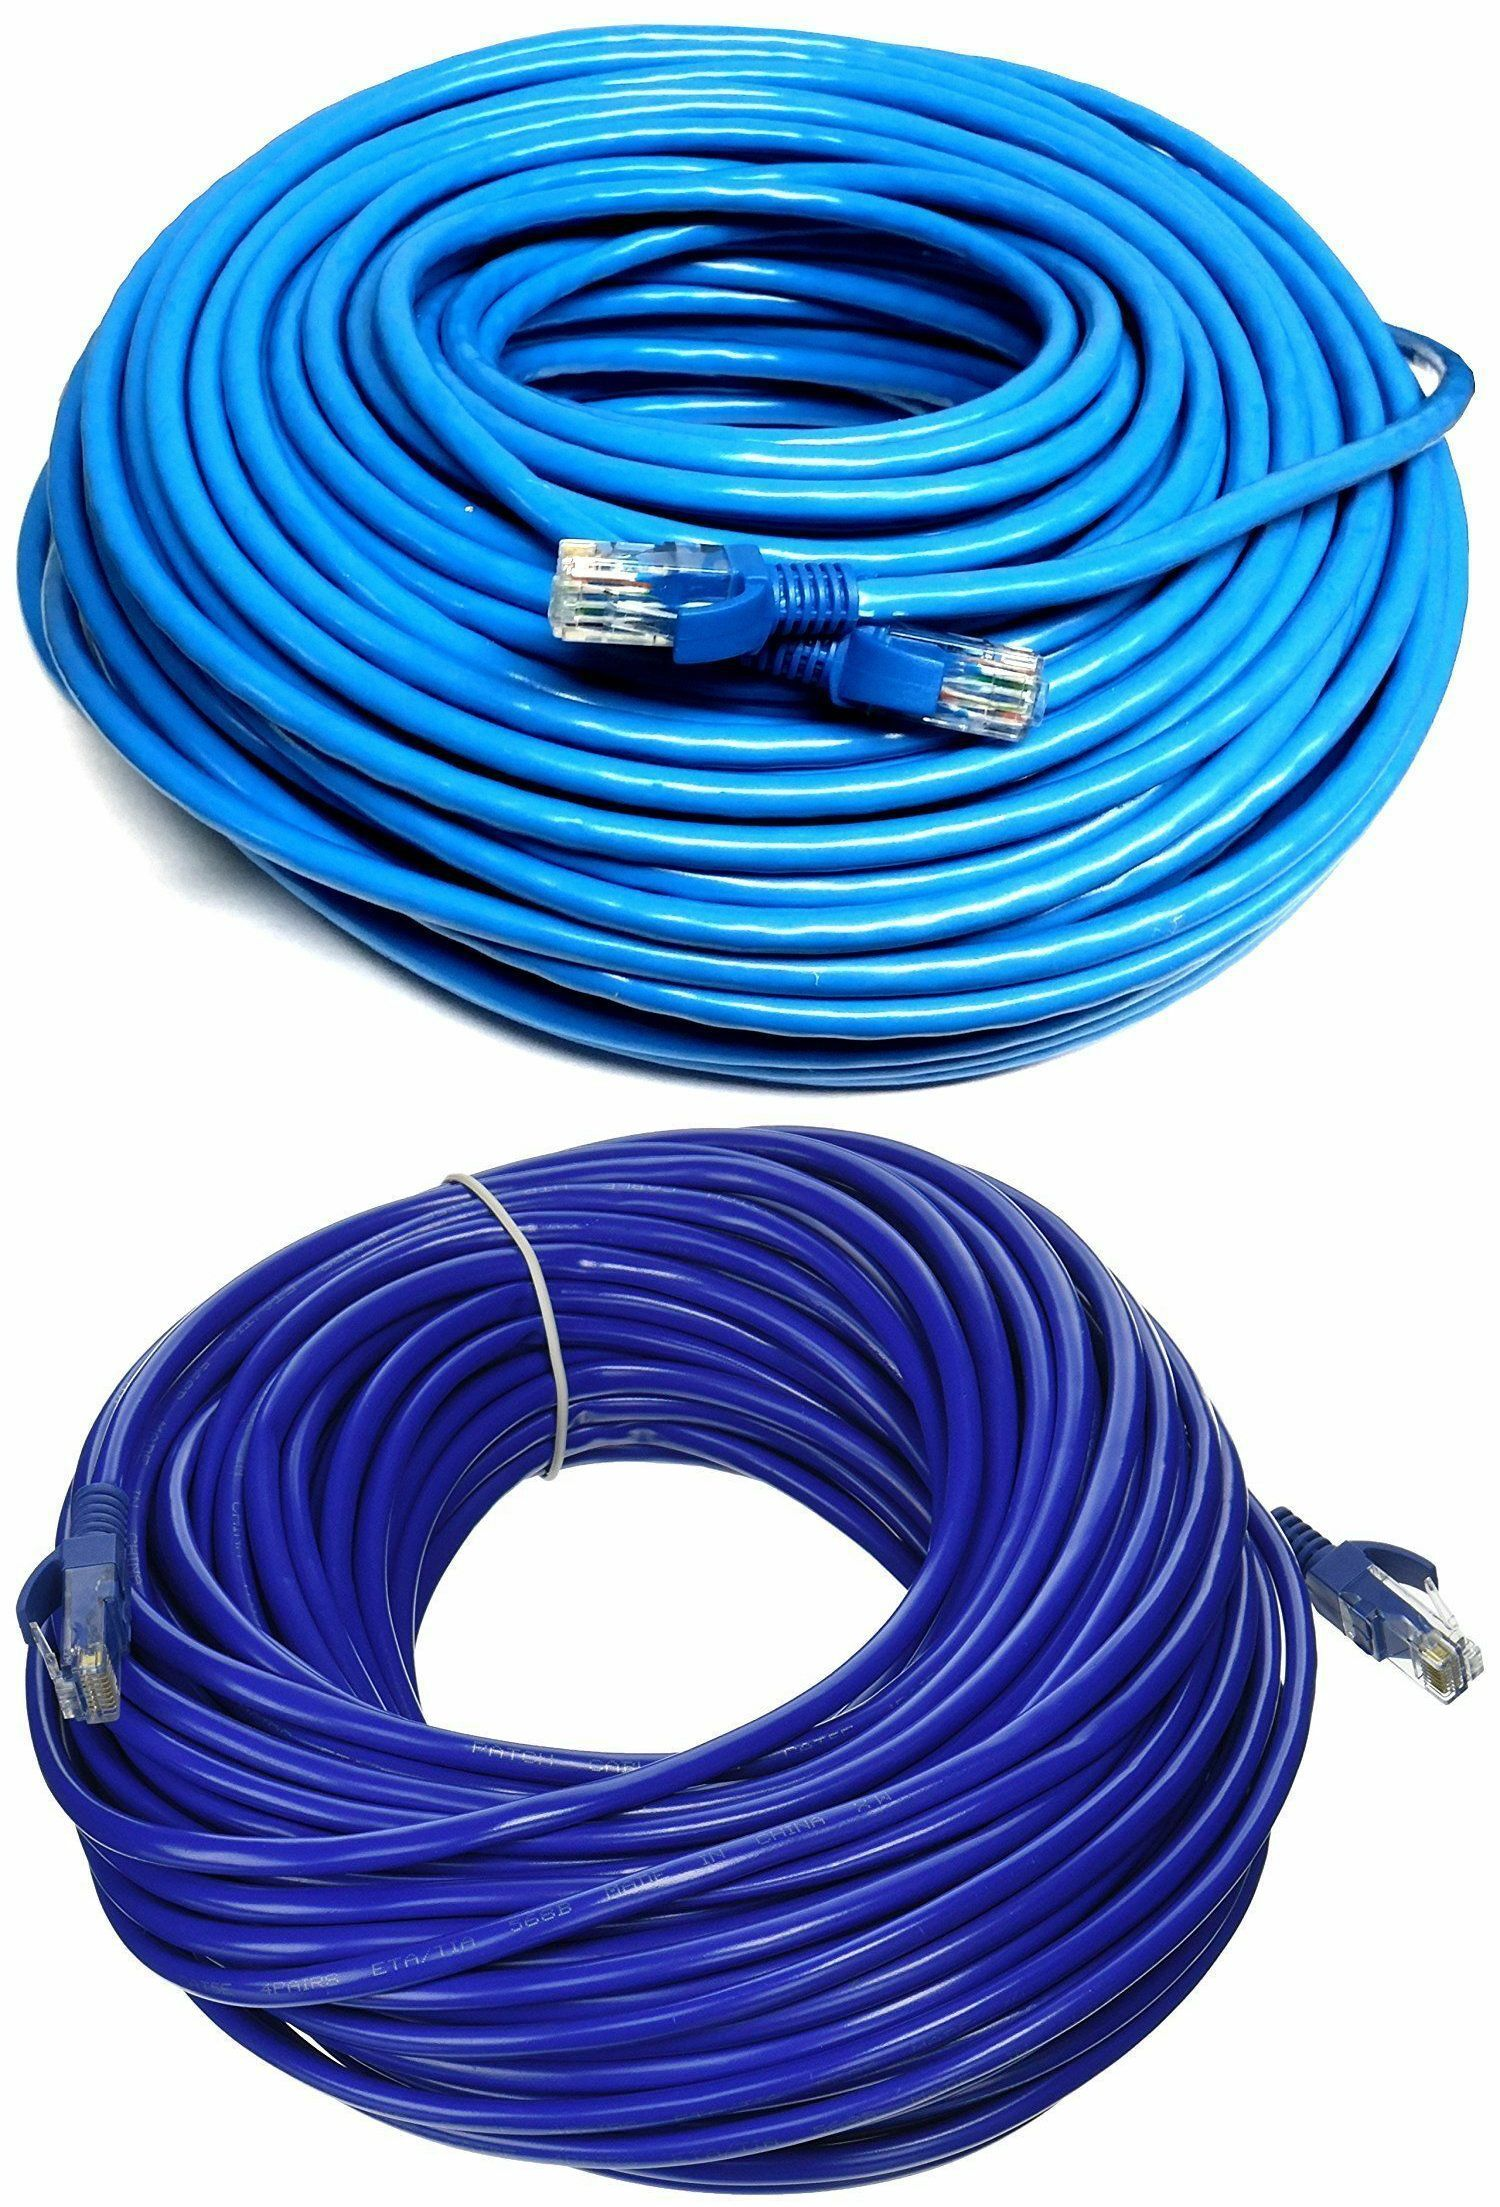 CAT5e Patch Cable Black Gray White Blue Ethernet 3ft 6ft 10ft 20ft 30ft 50ft LOT